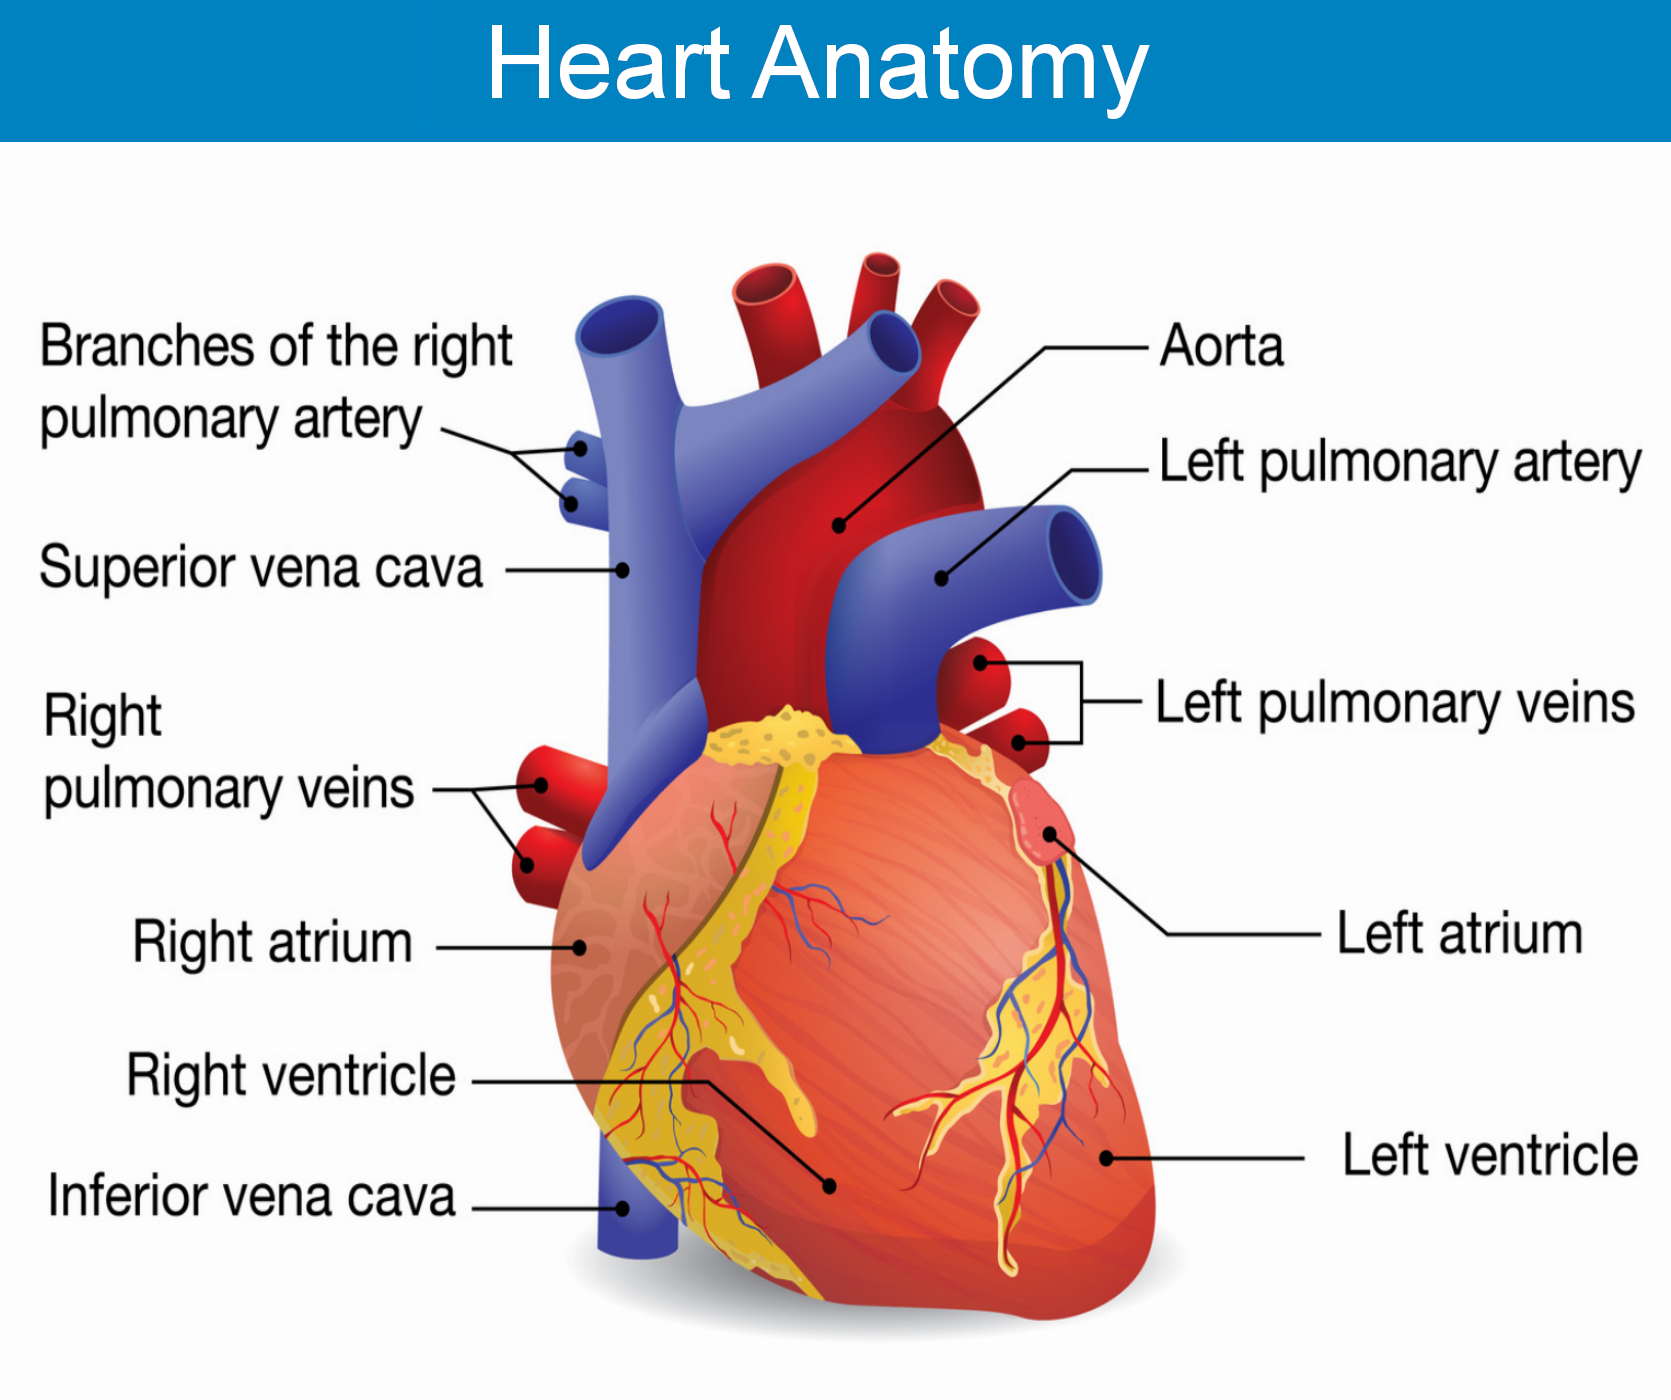 Heart standard first aid online certification course cardiac arrest human heart anatomy cardiac arrest warning signs cardiac arrest help 1betcityfo Images